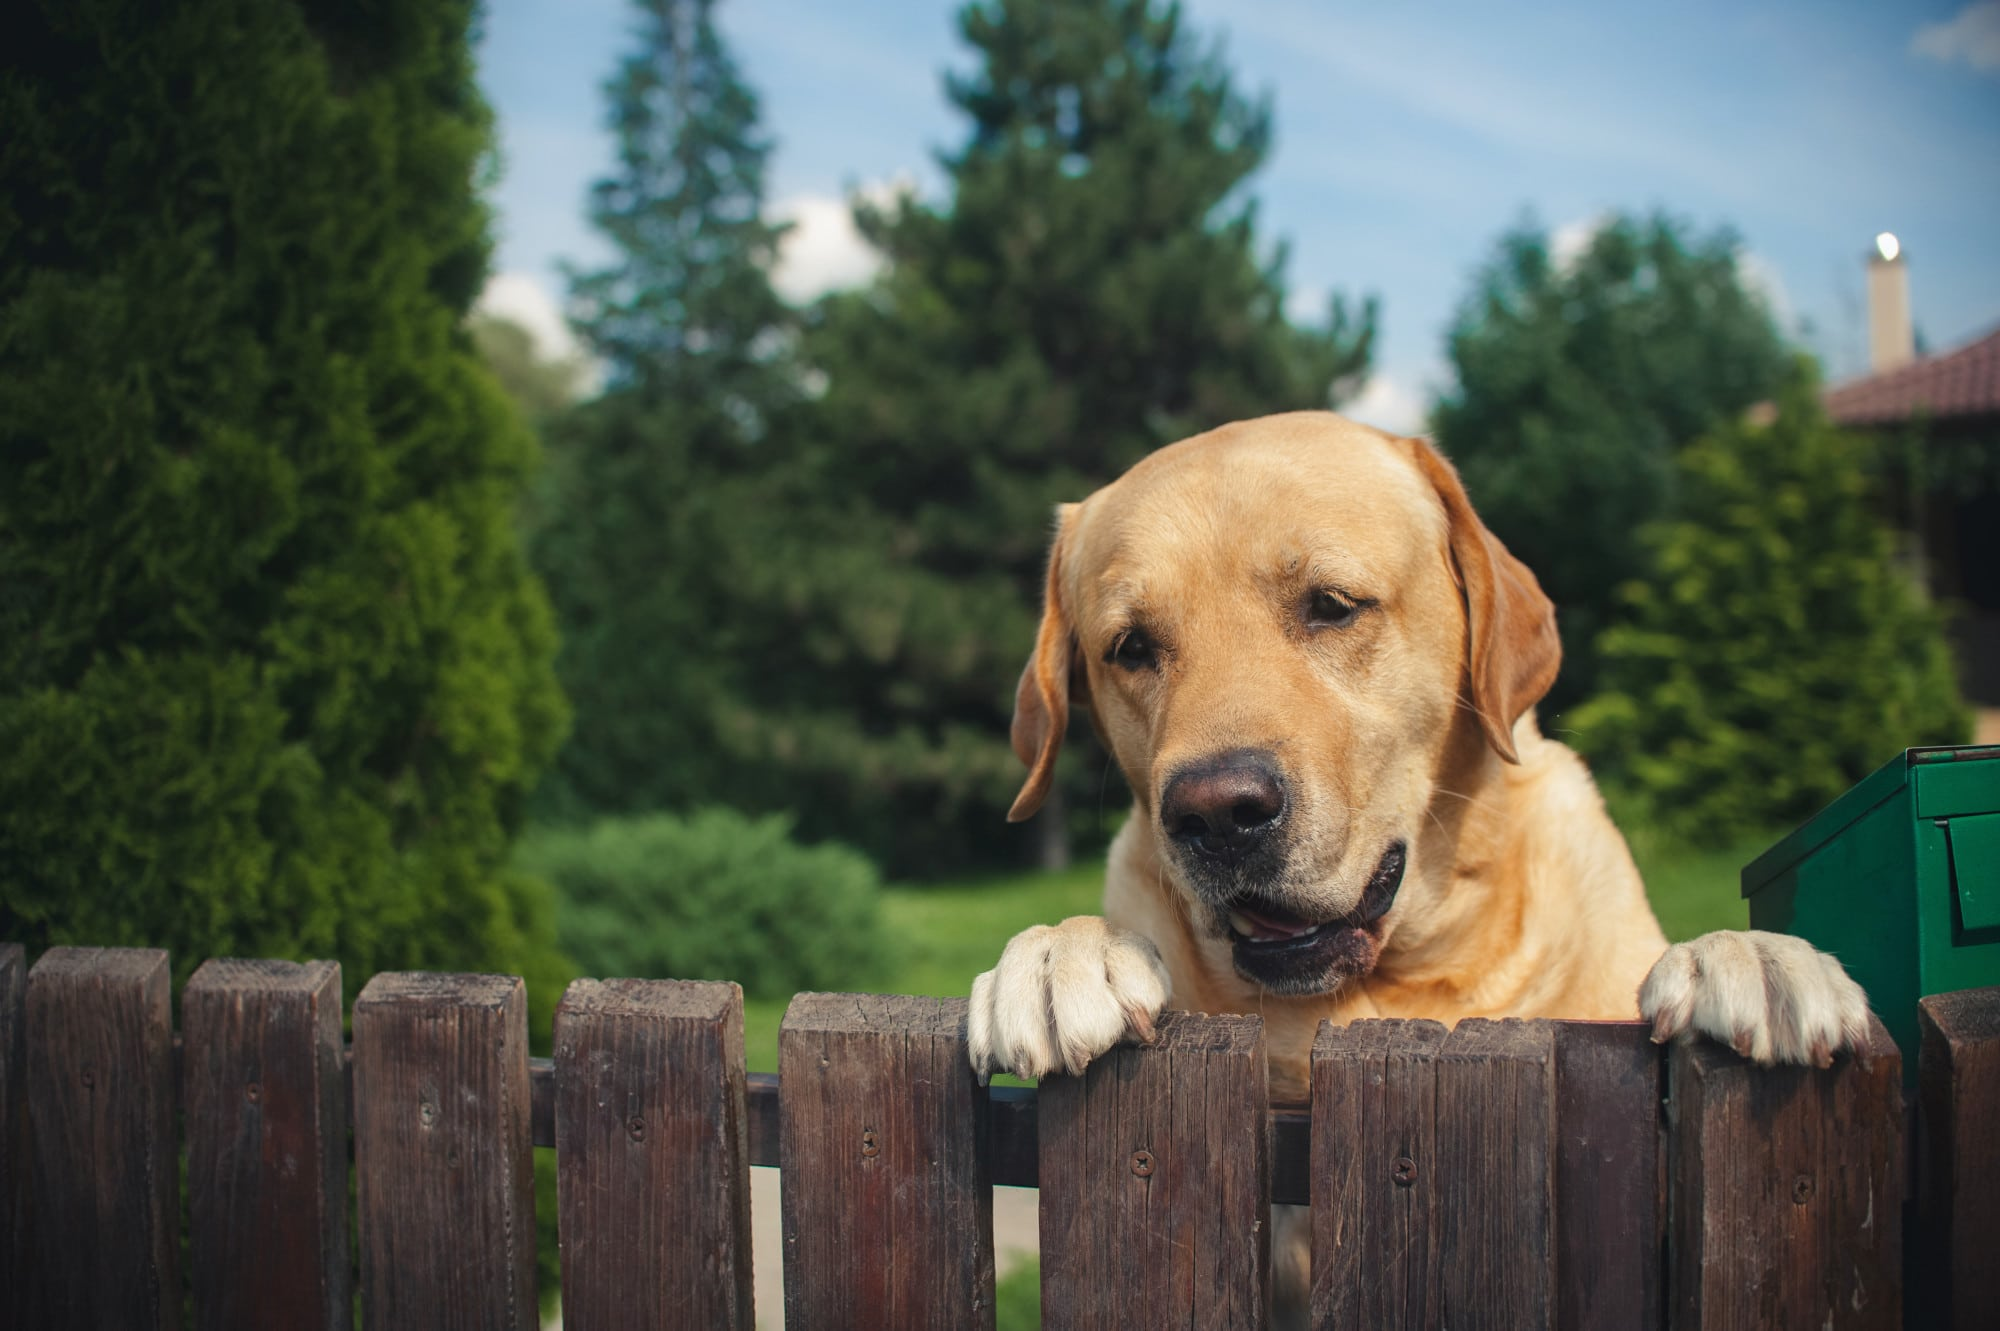 Dog Containment Options in St. Louis: How to Find a Pet Containment Fence